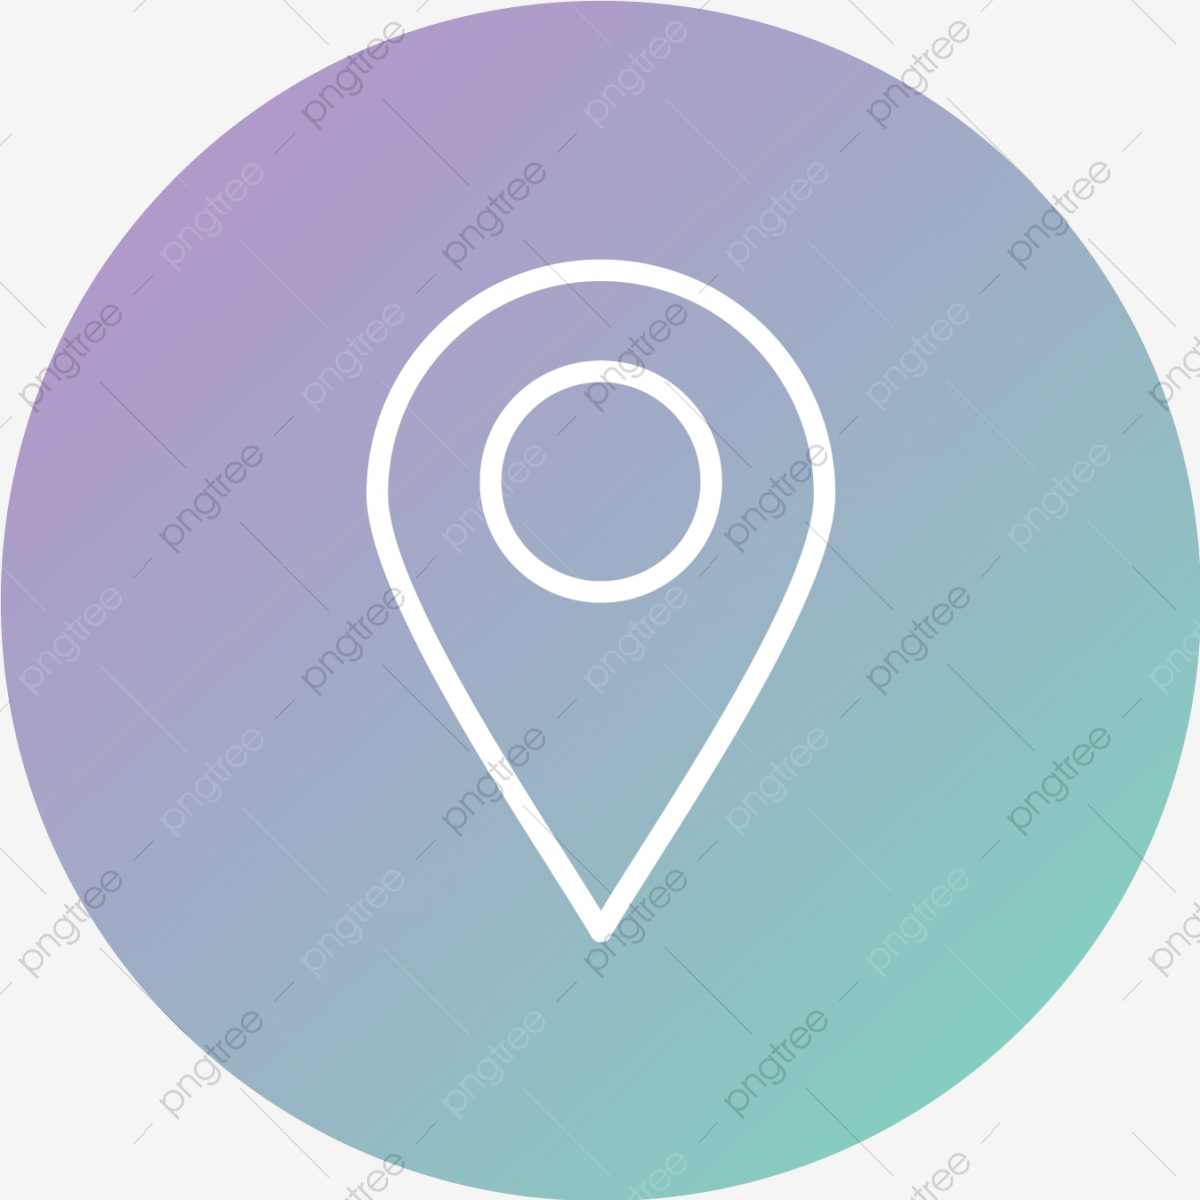 Location Vector Icon White Background Location Icons White Icons Background Icons Png And Vector With Transparent Background For Free Download